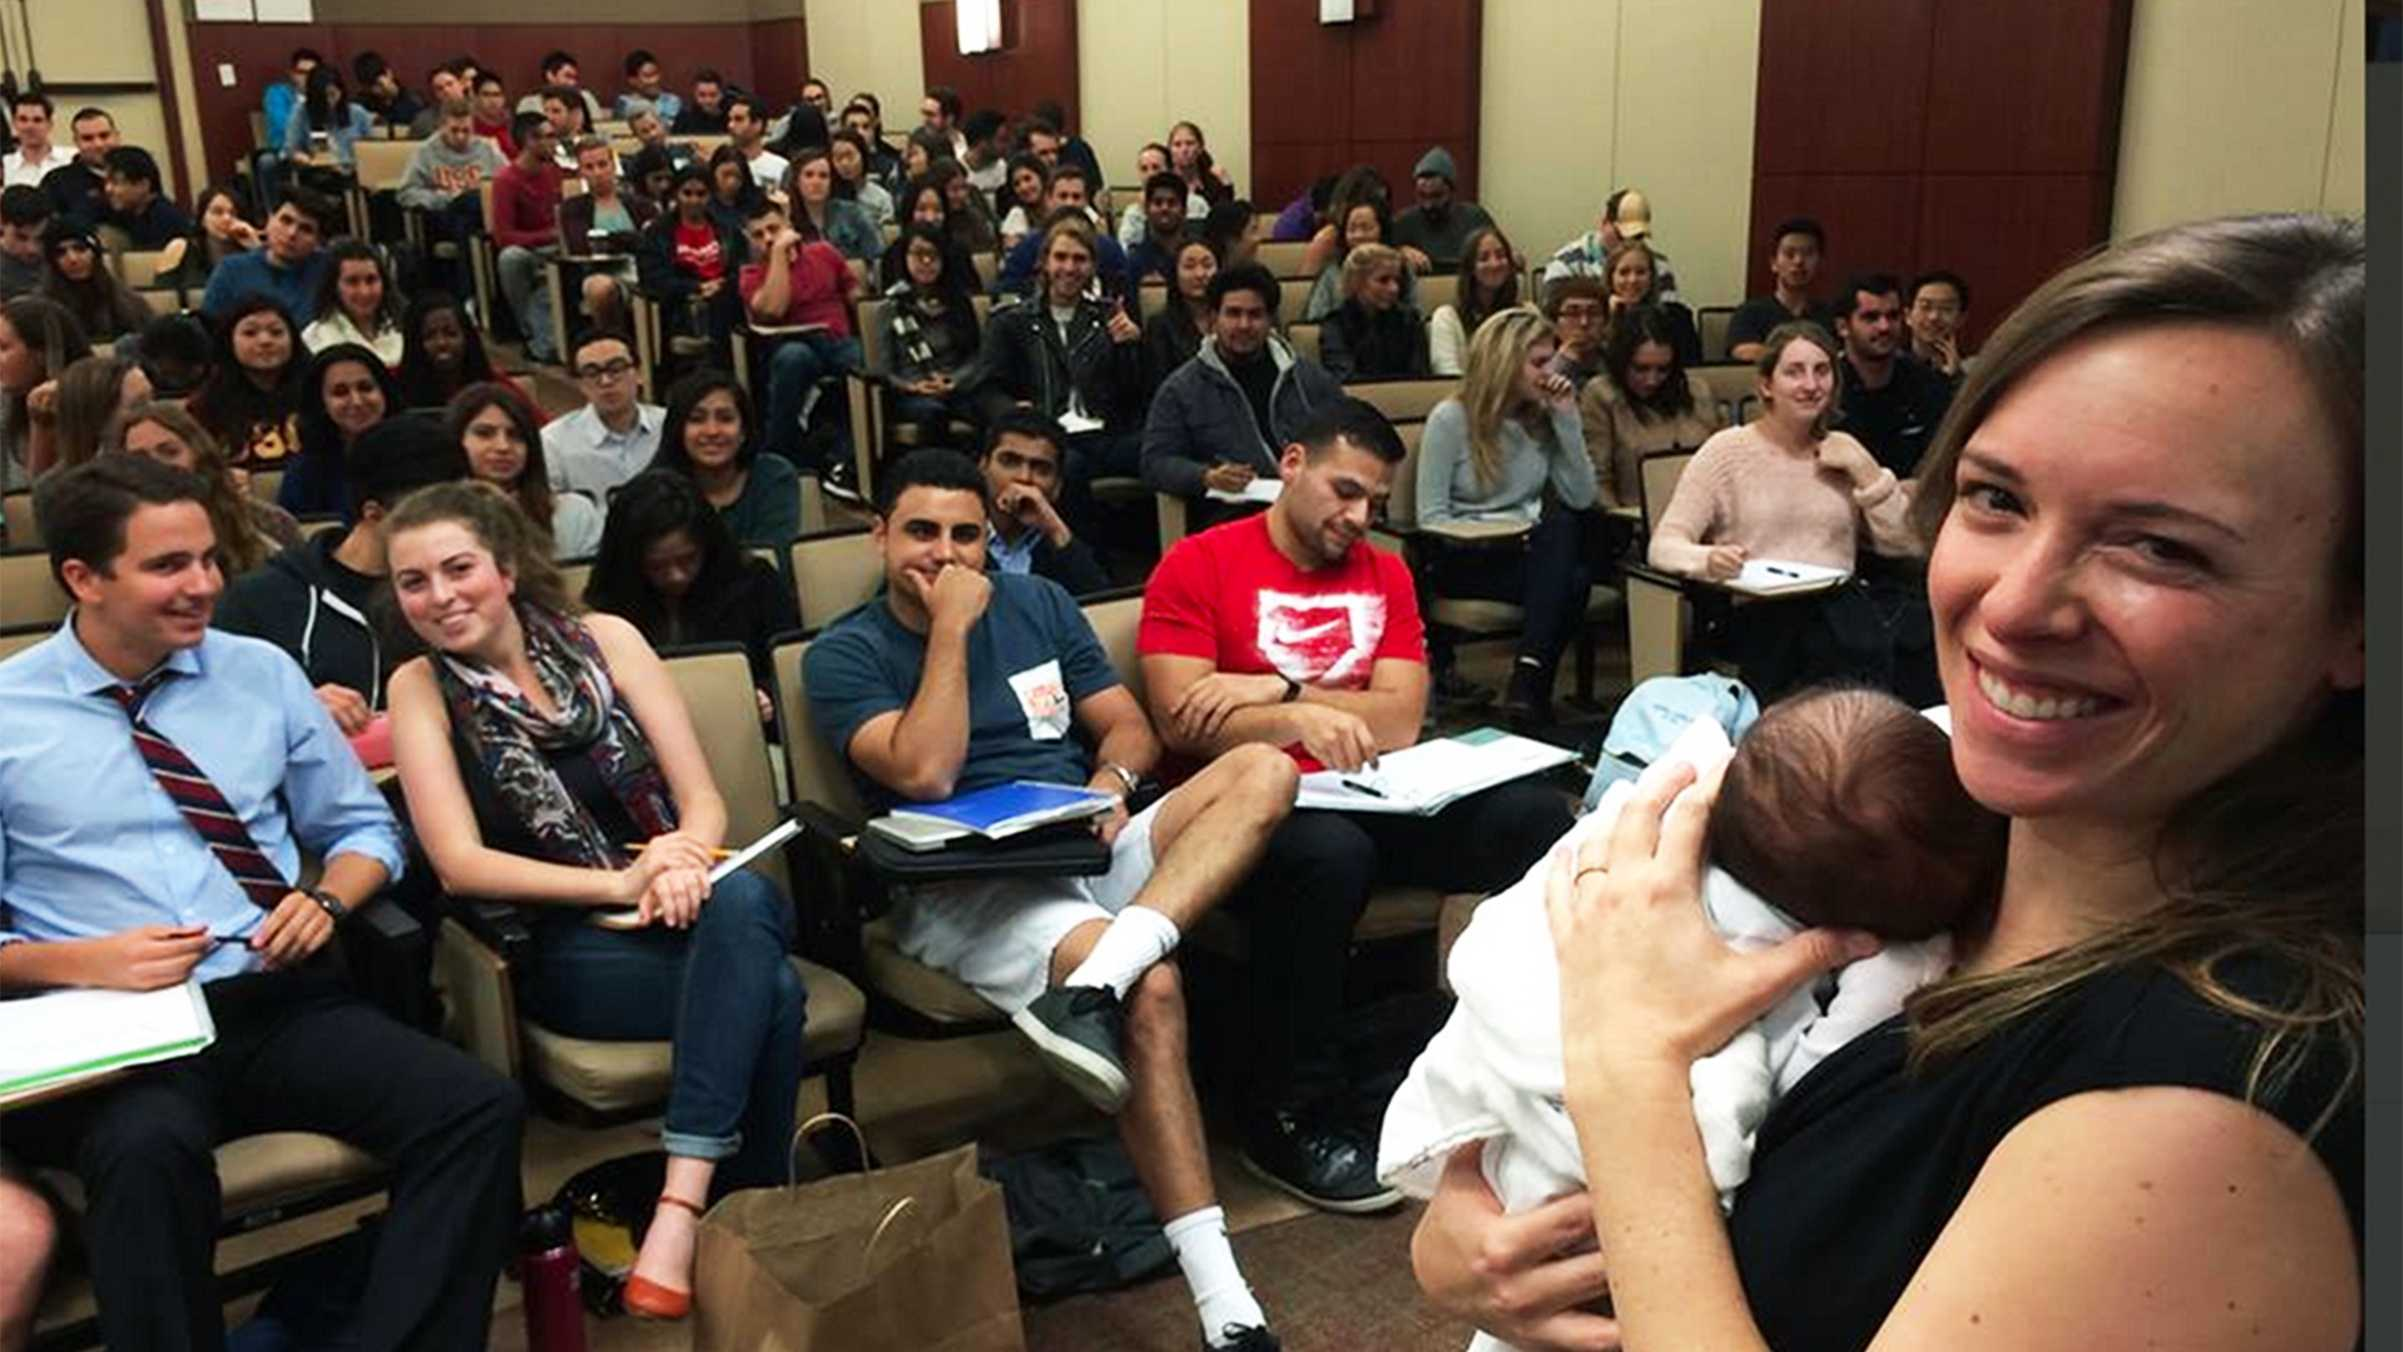 """Jessica Jackley posted this photo on Twitter Friday with the caption, """"Me & my then-3wk old lecturing (breastfed twice during talk!) at @USC. #workingmom"""""""